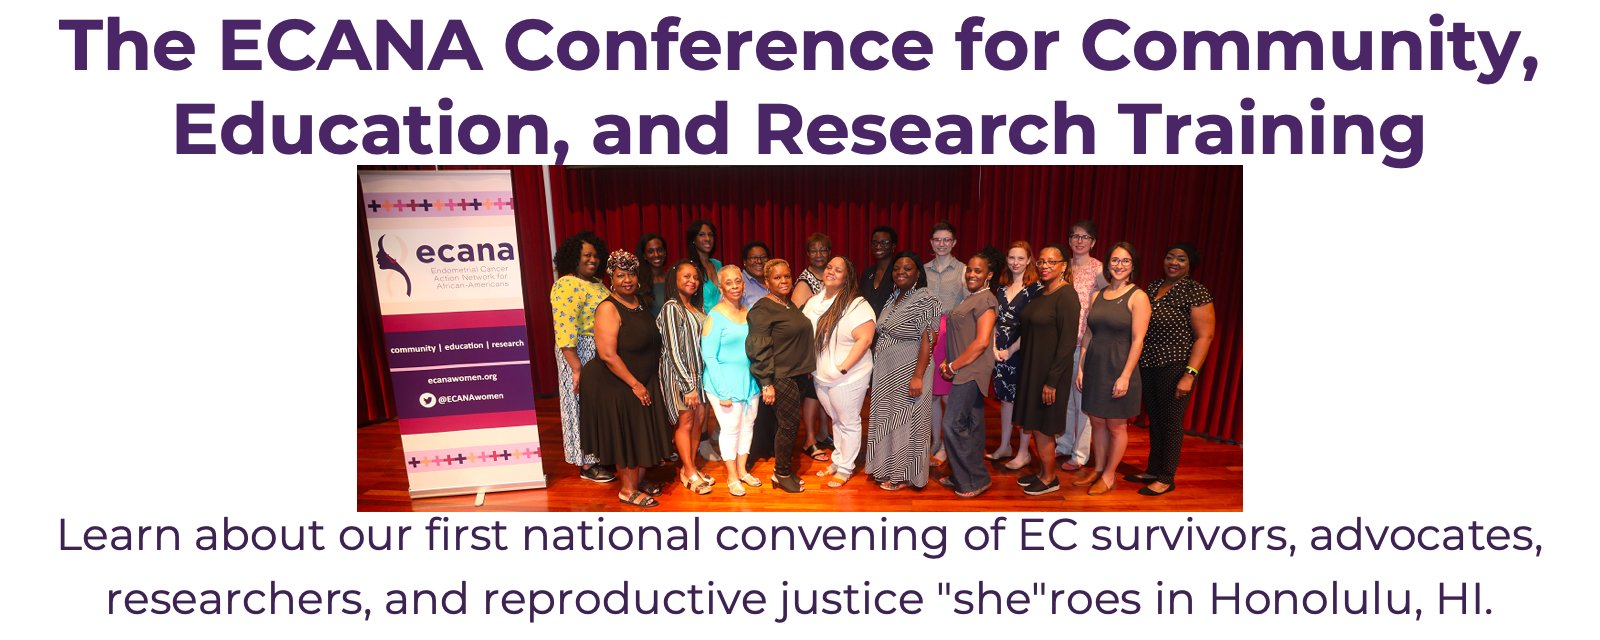 ECANA Conference for Community, Education, and Research Training